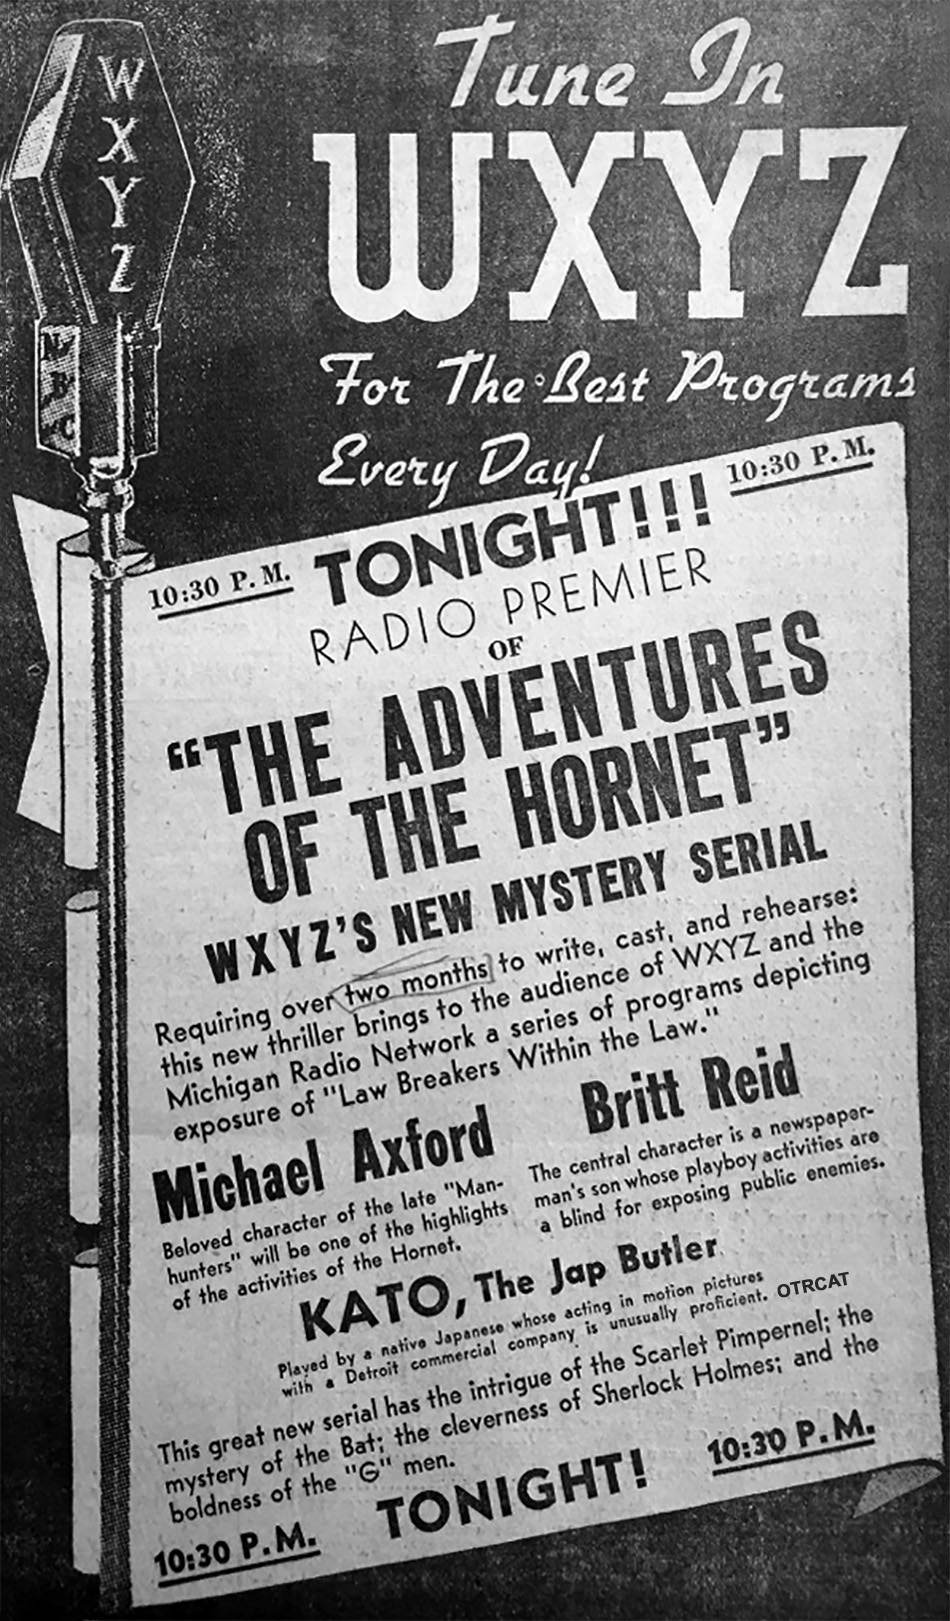 WXYZ advertisement for green hornet